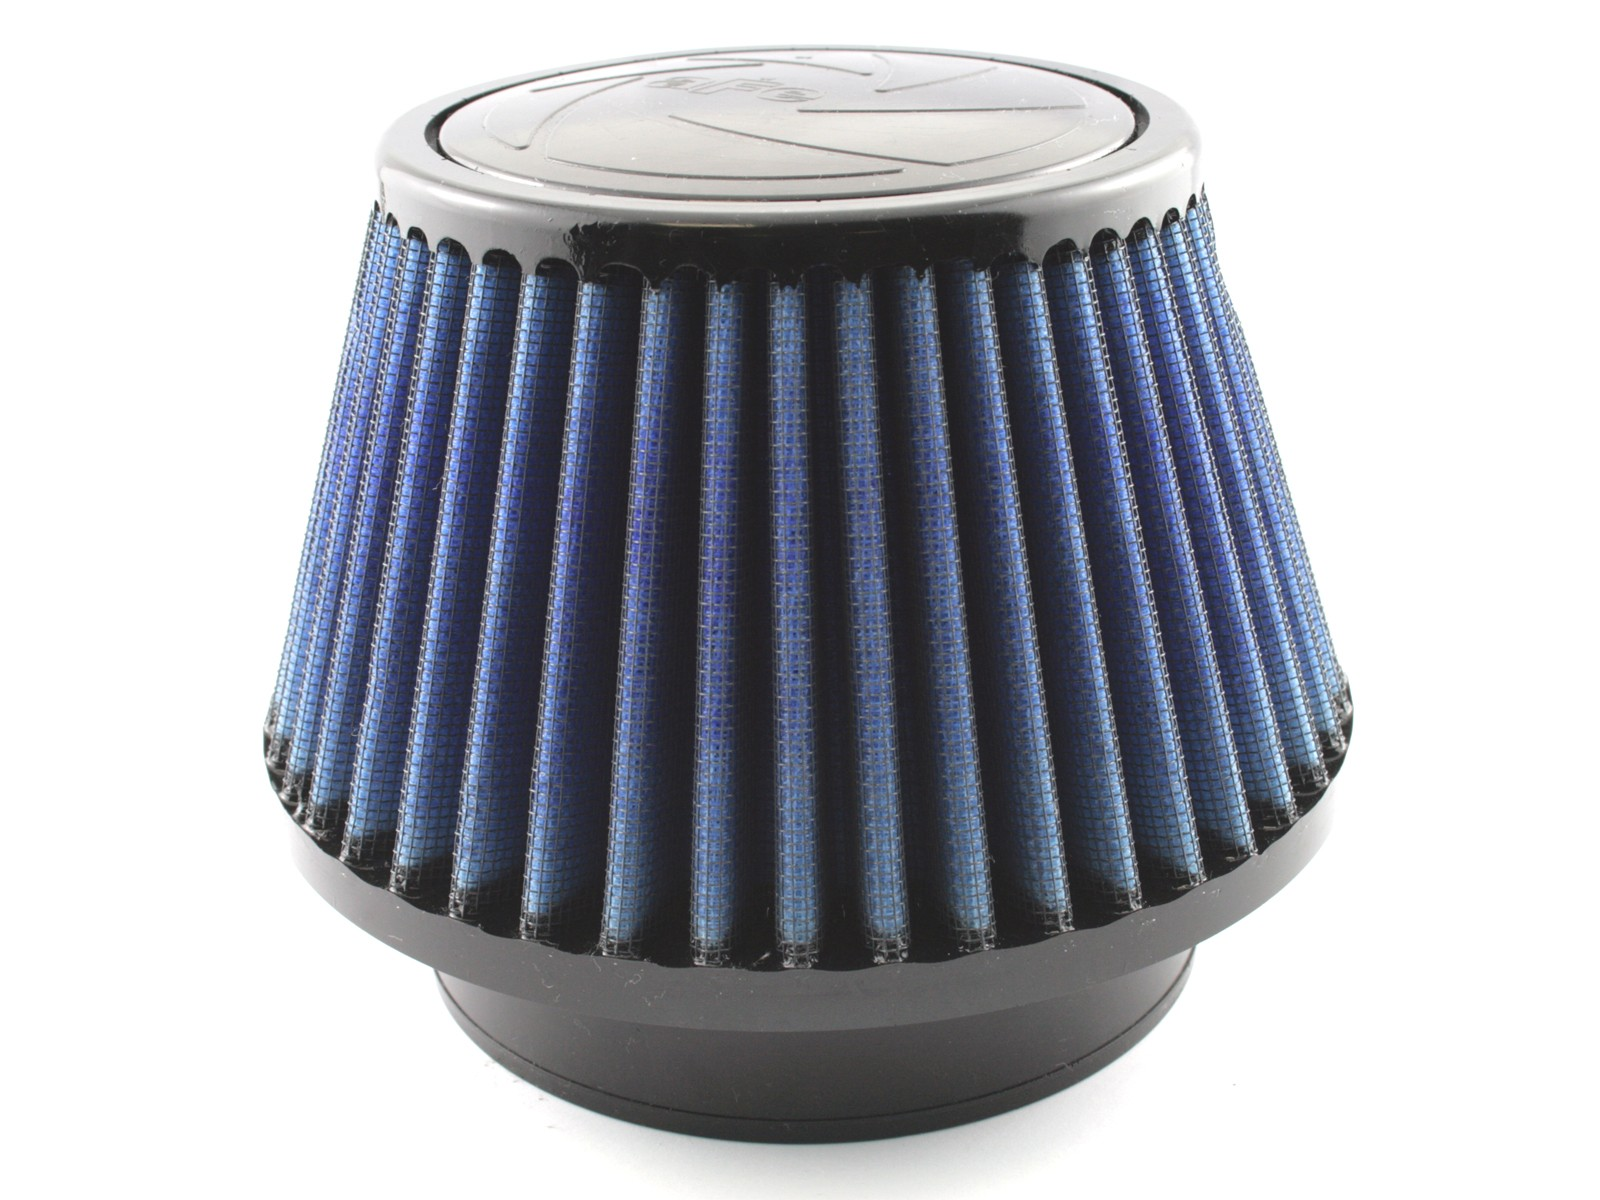 aFe POWER 24-45008 Magnum FLOW Pro 5R Air Filter